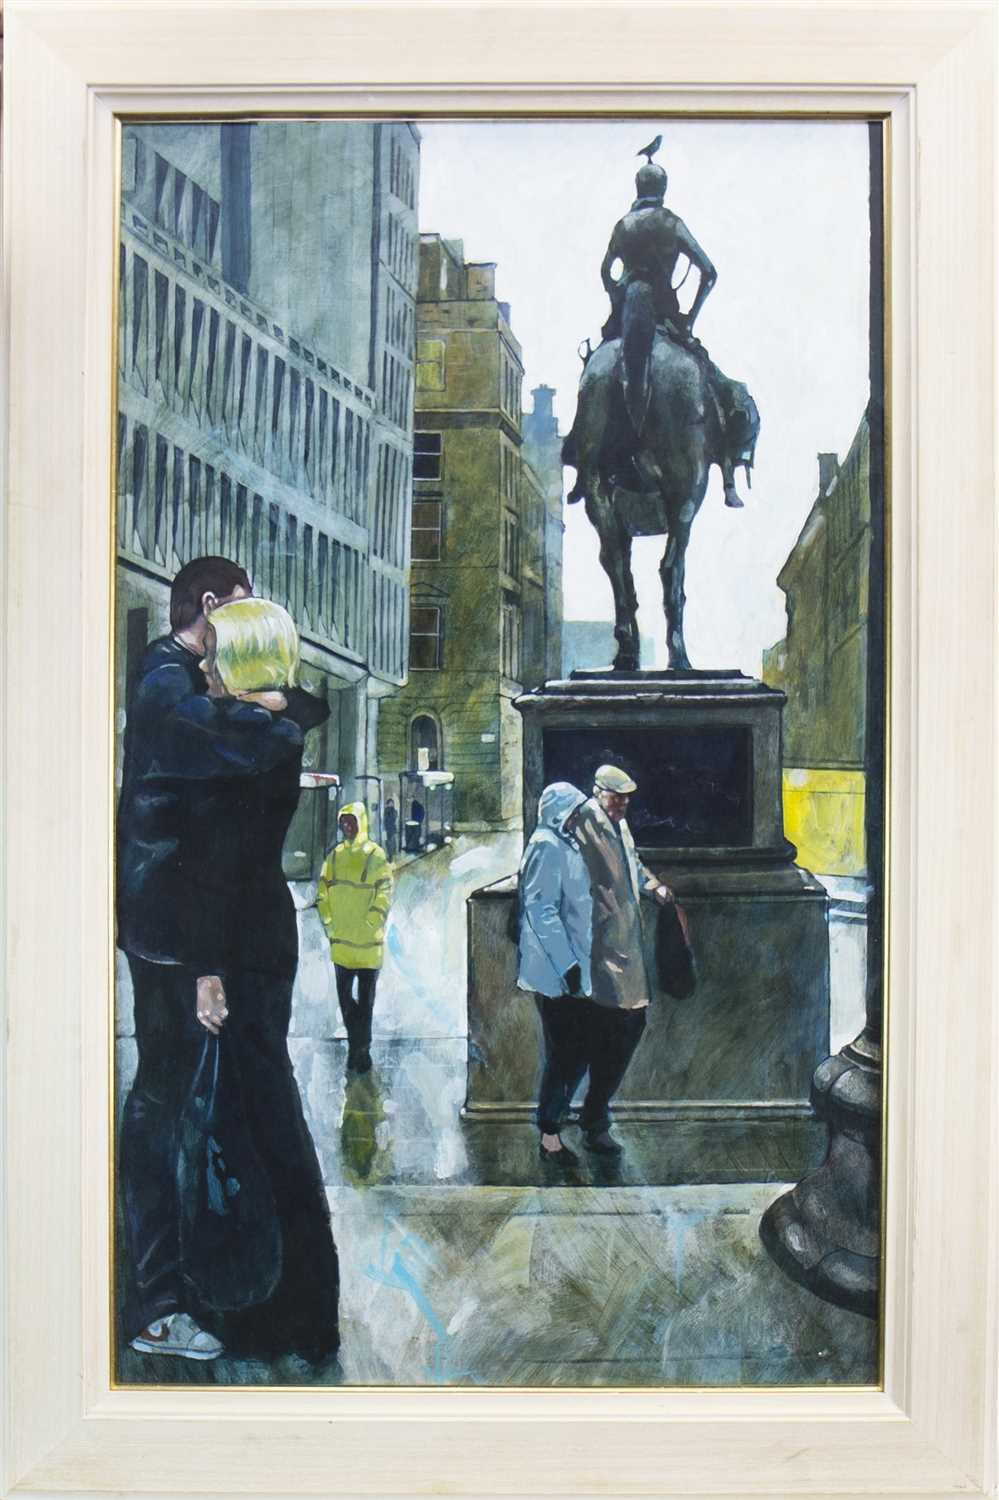 Lot 620-ON GOMA STEPS, AN ACRYLIC BY BRYAN EVANS